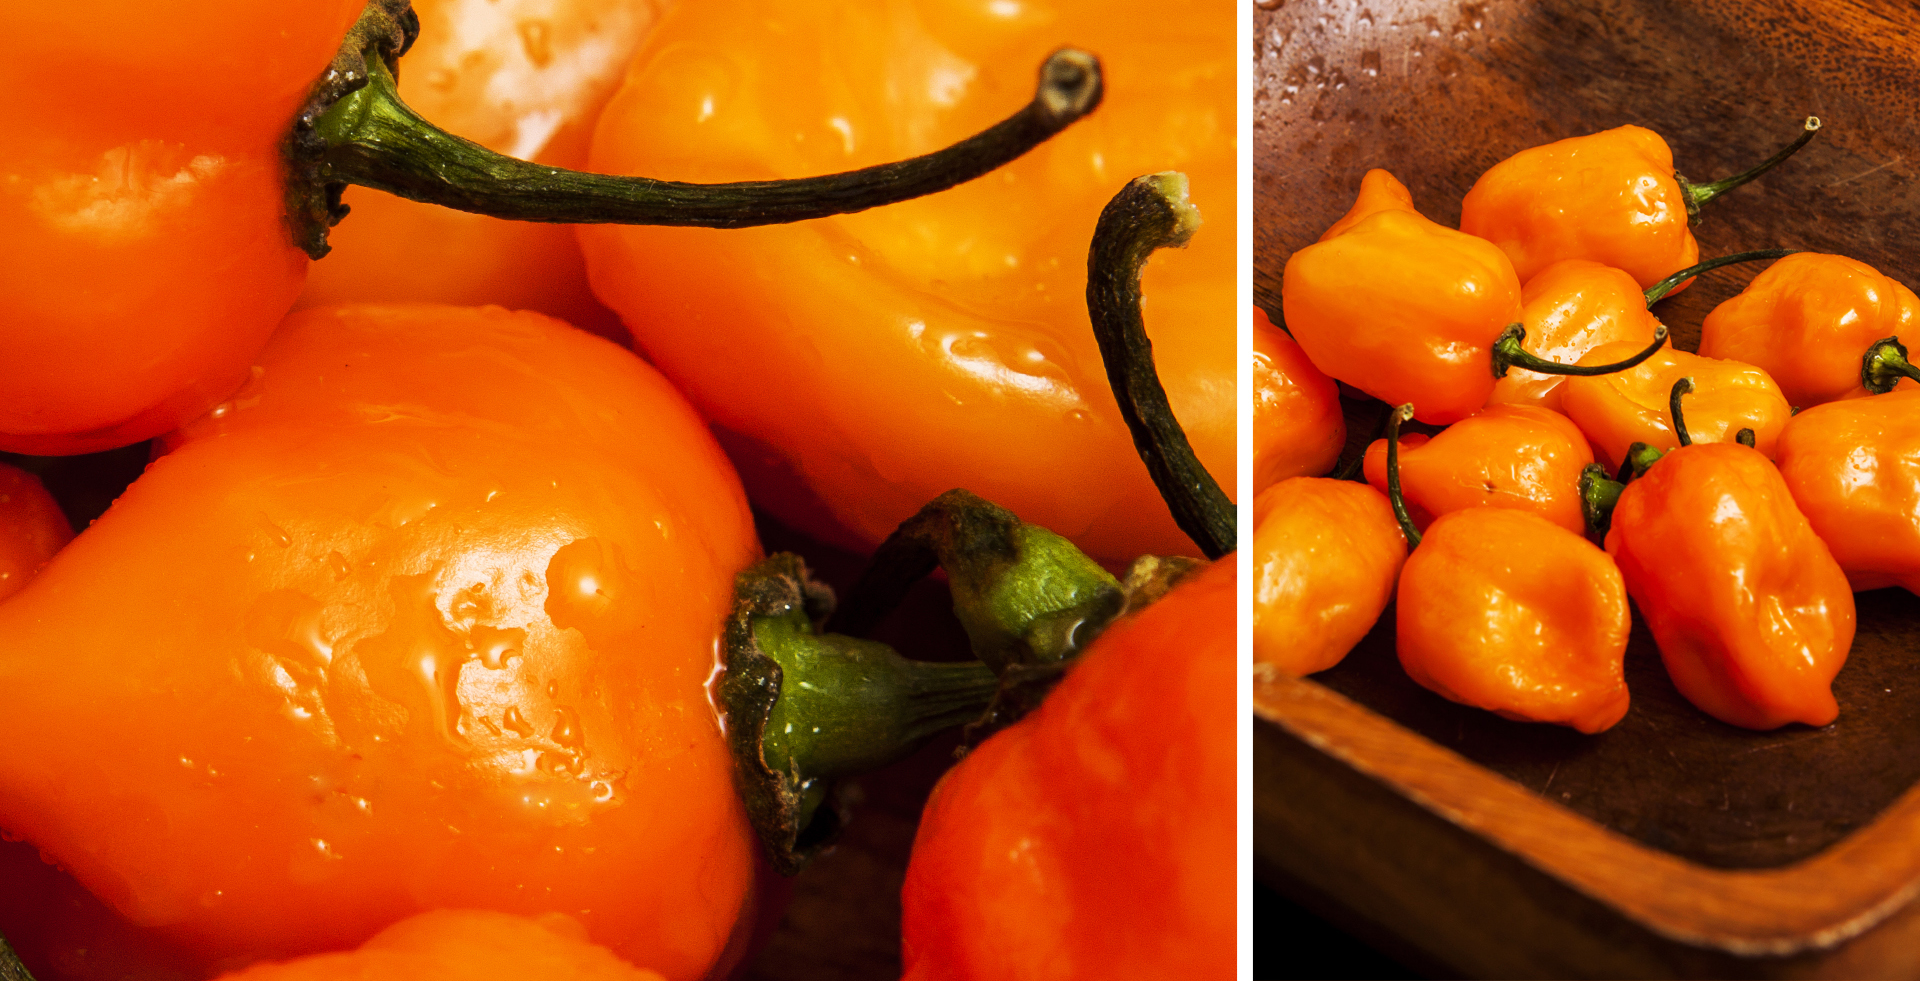 orange_bell_peppers_rcfdistributors